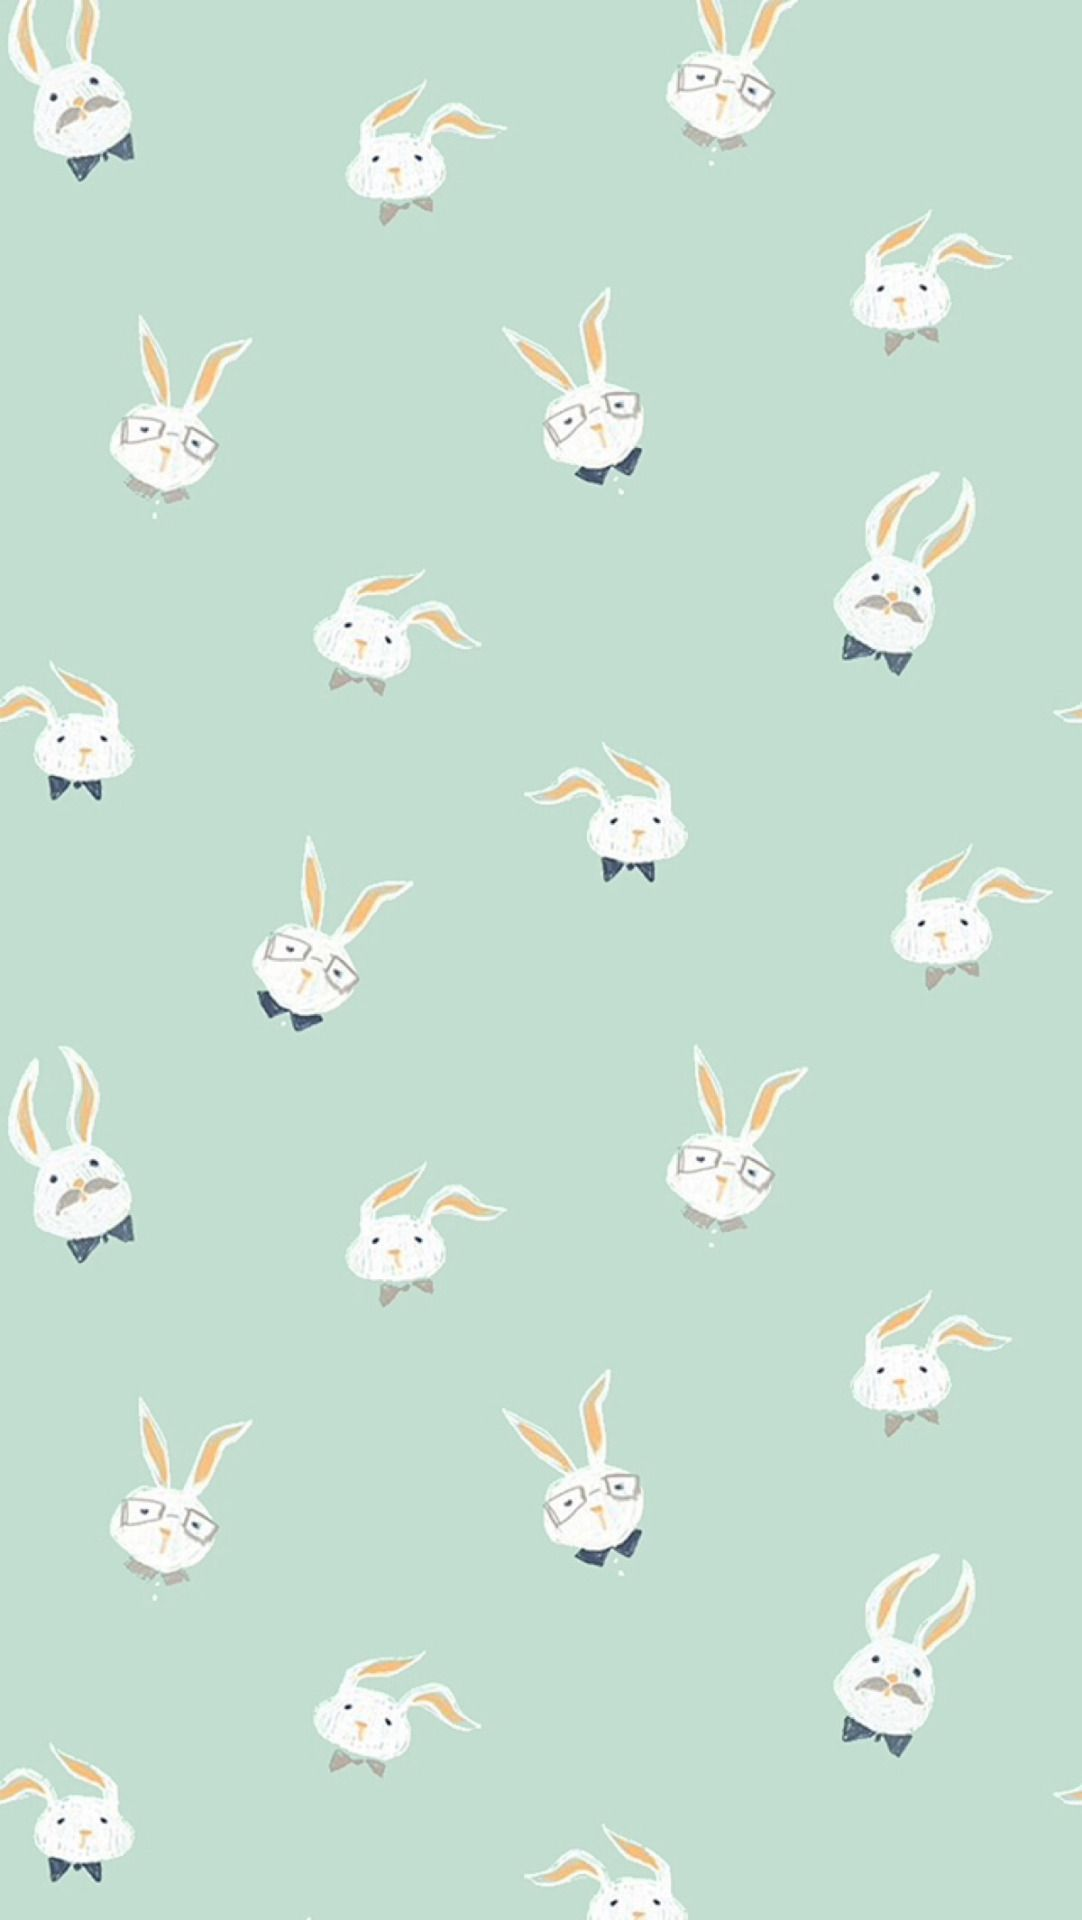 Bunny Iphone Wallpapers Top Free Bunny Iphone Backgrounds